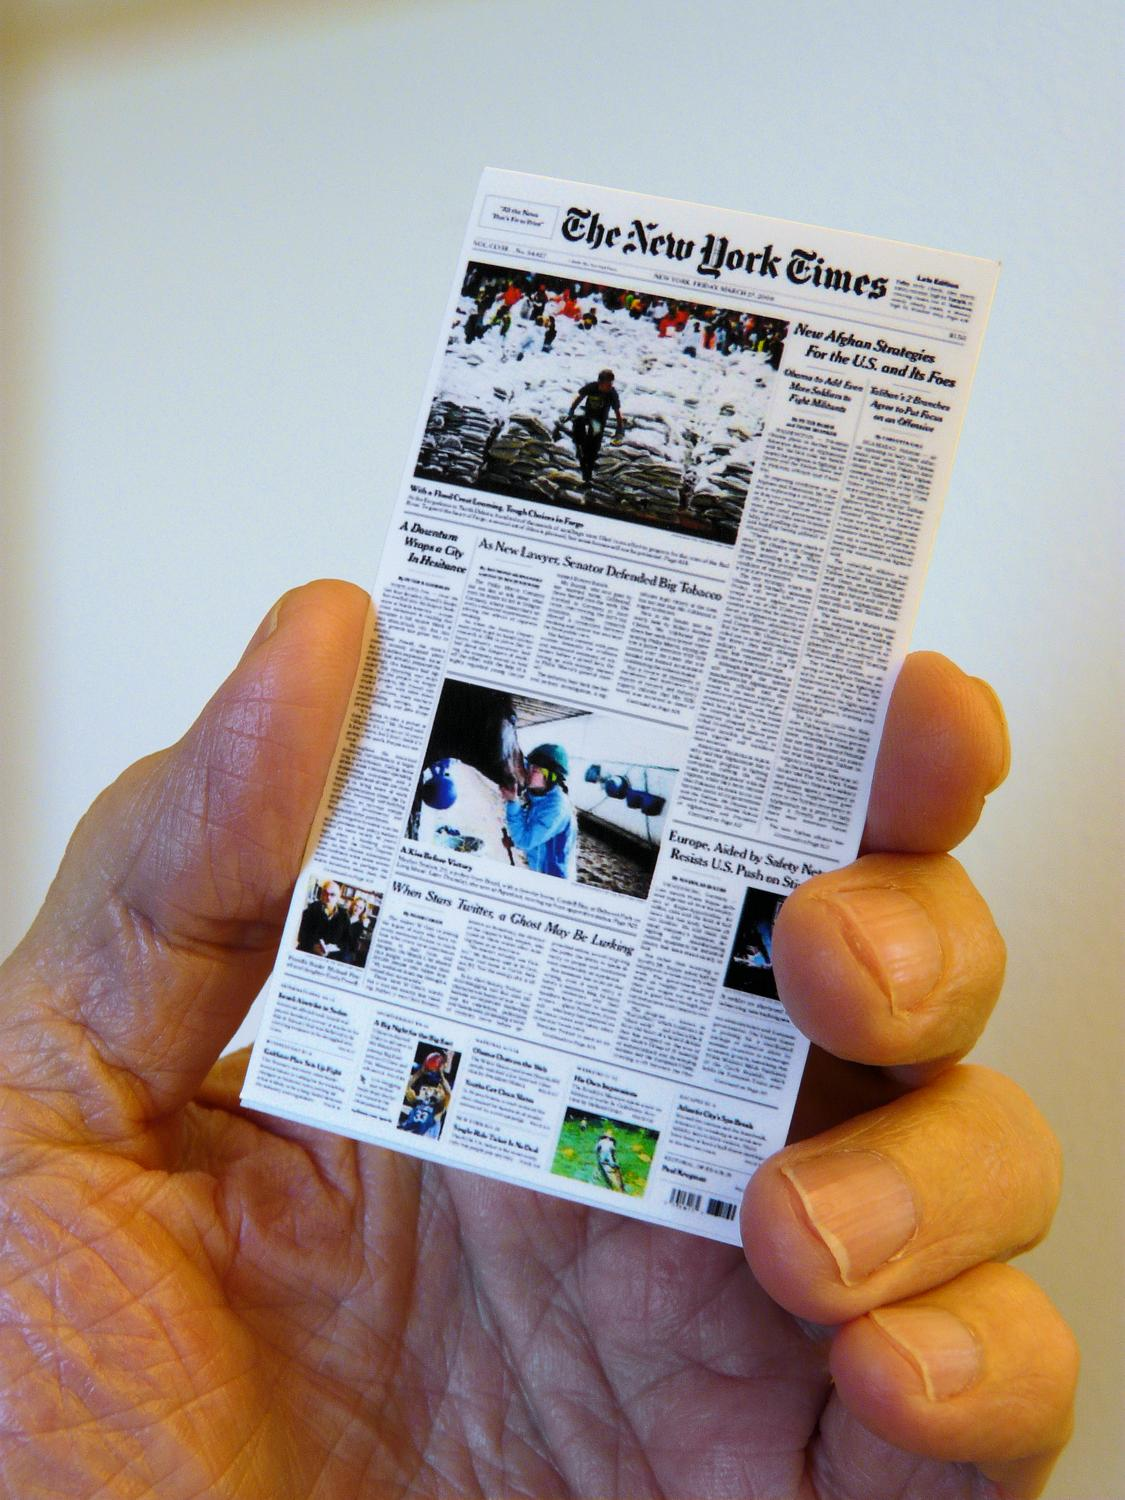 Hand holding nano edition of the NY Times - The